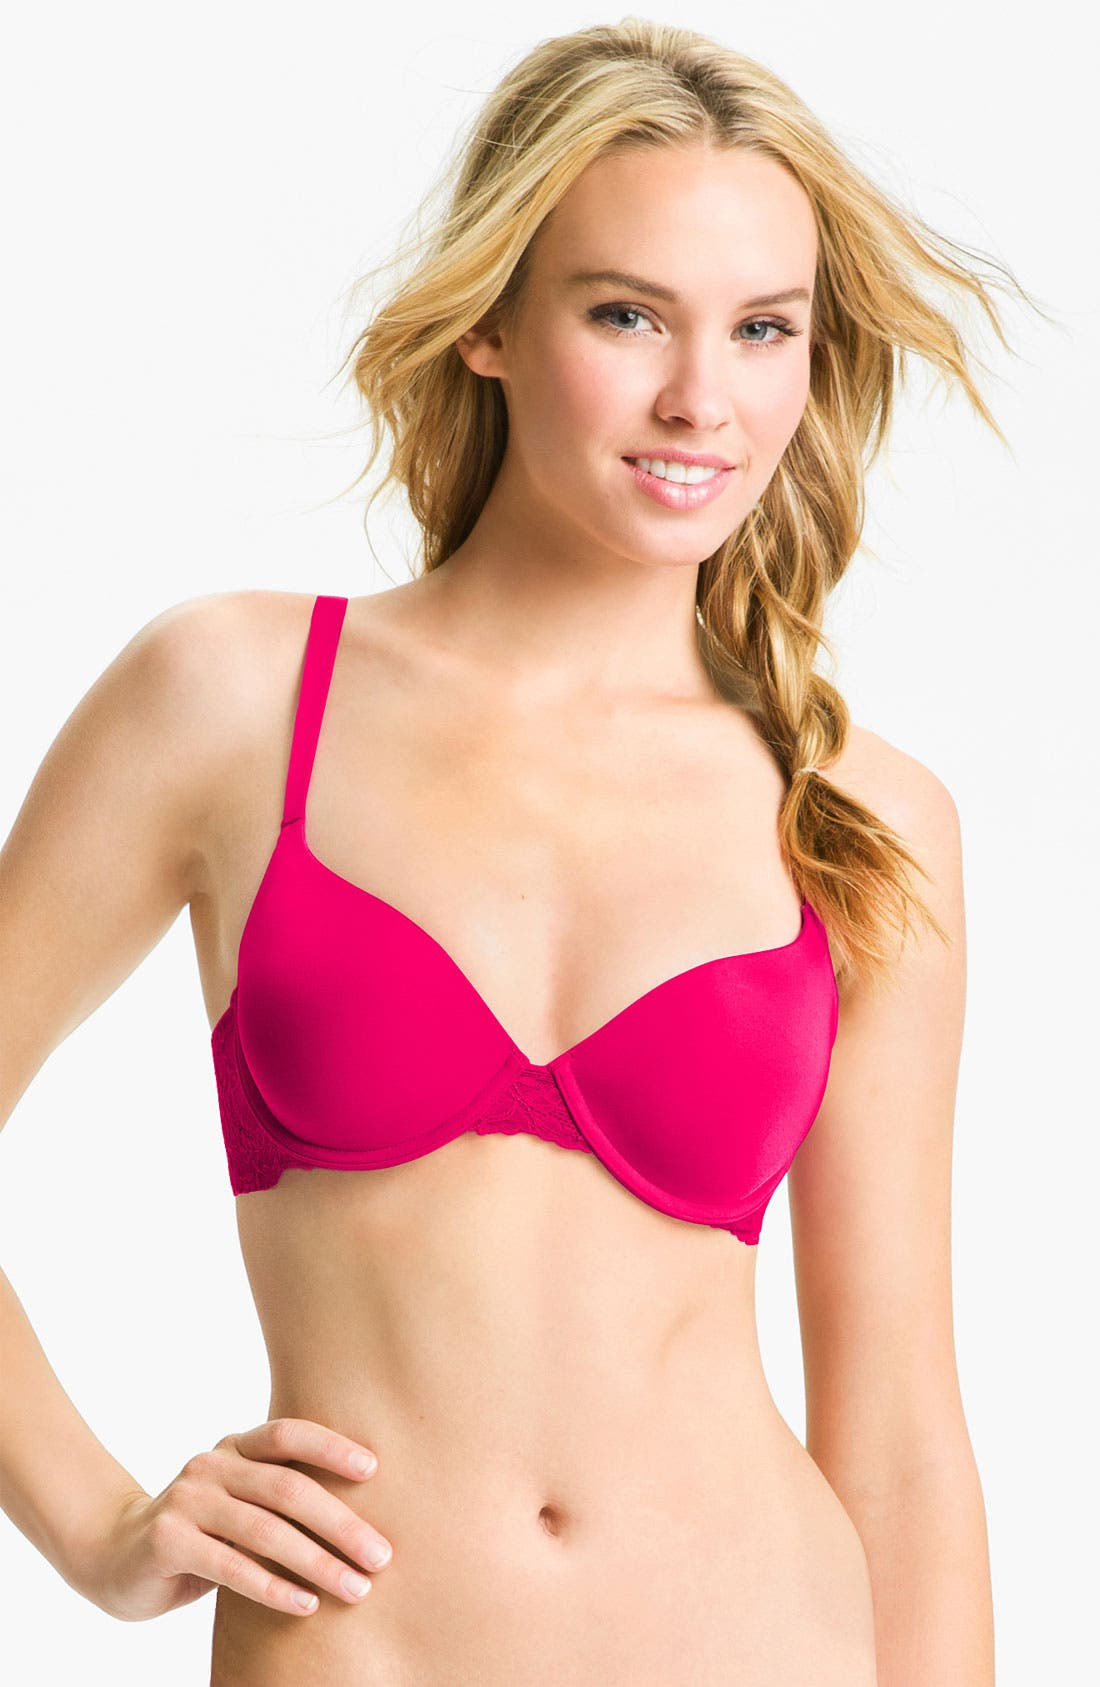 Alternate Image 1 Selected - Calvin Klein 'Customized Lift - F3274' Contour Underwire Bra